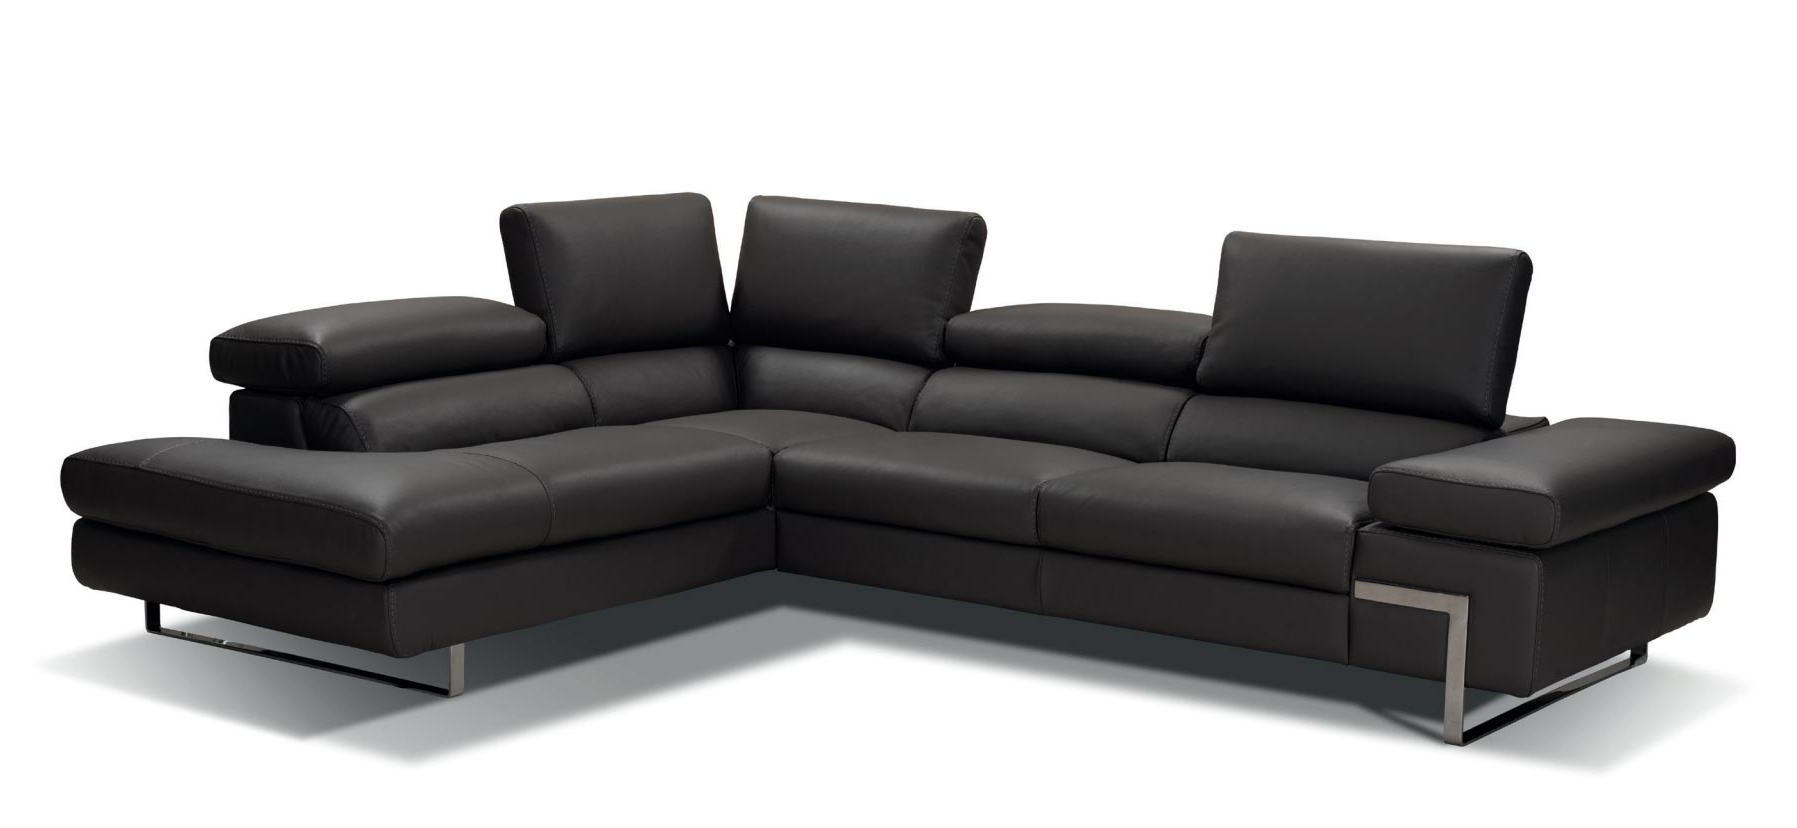 Queens Ny Sectional Sofas For Favorite Canal Furniture (View 19 of 20)